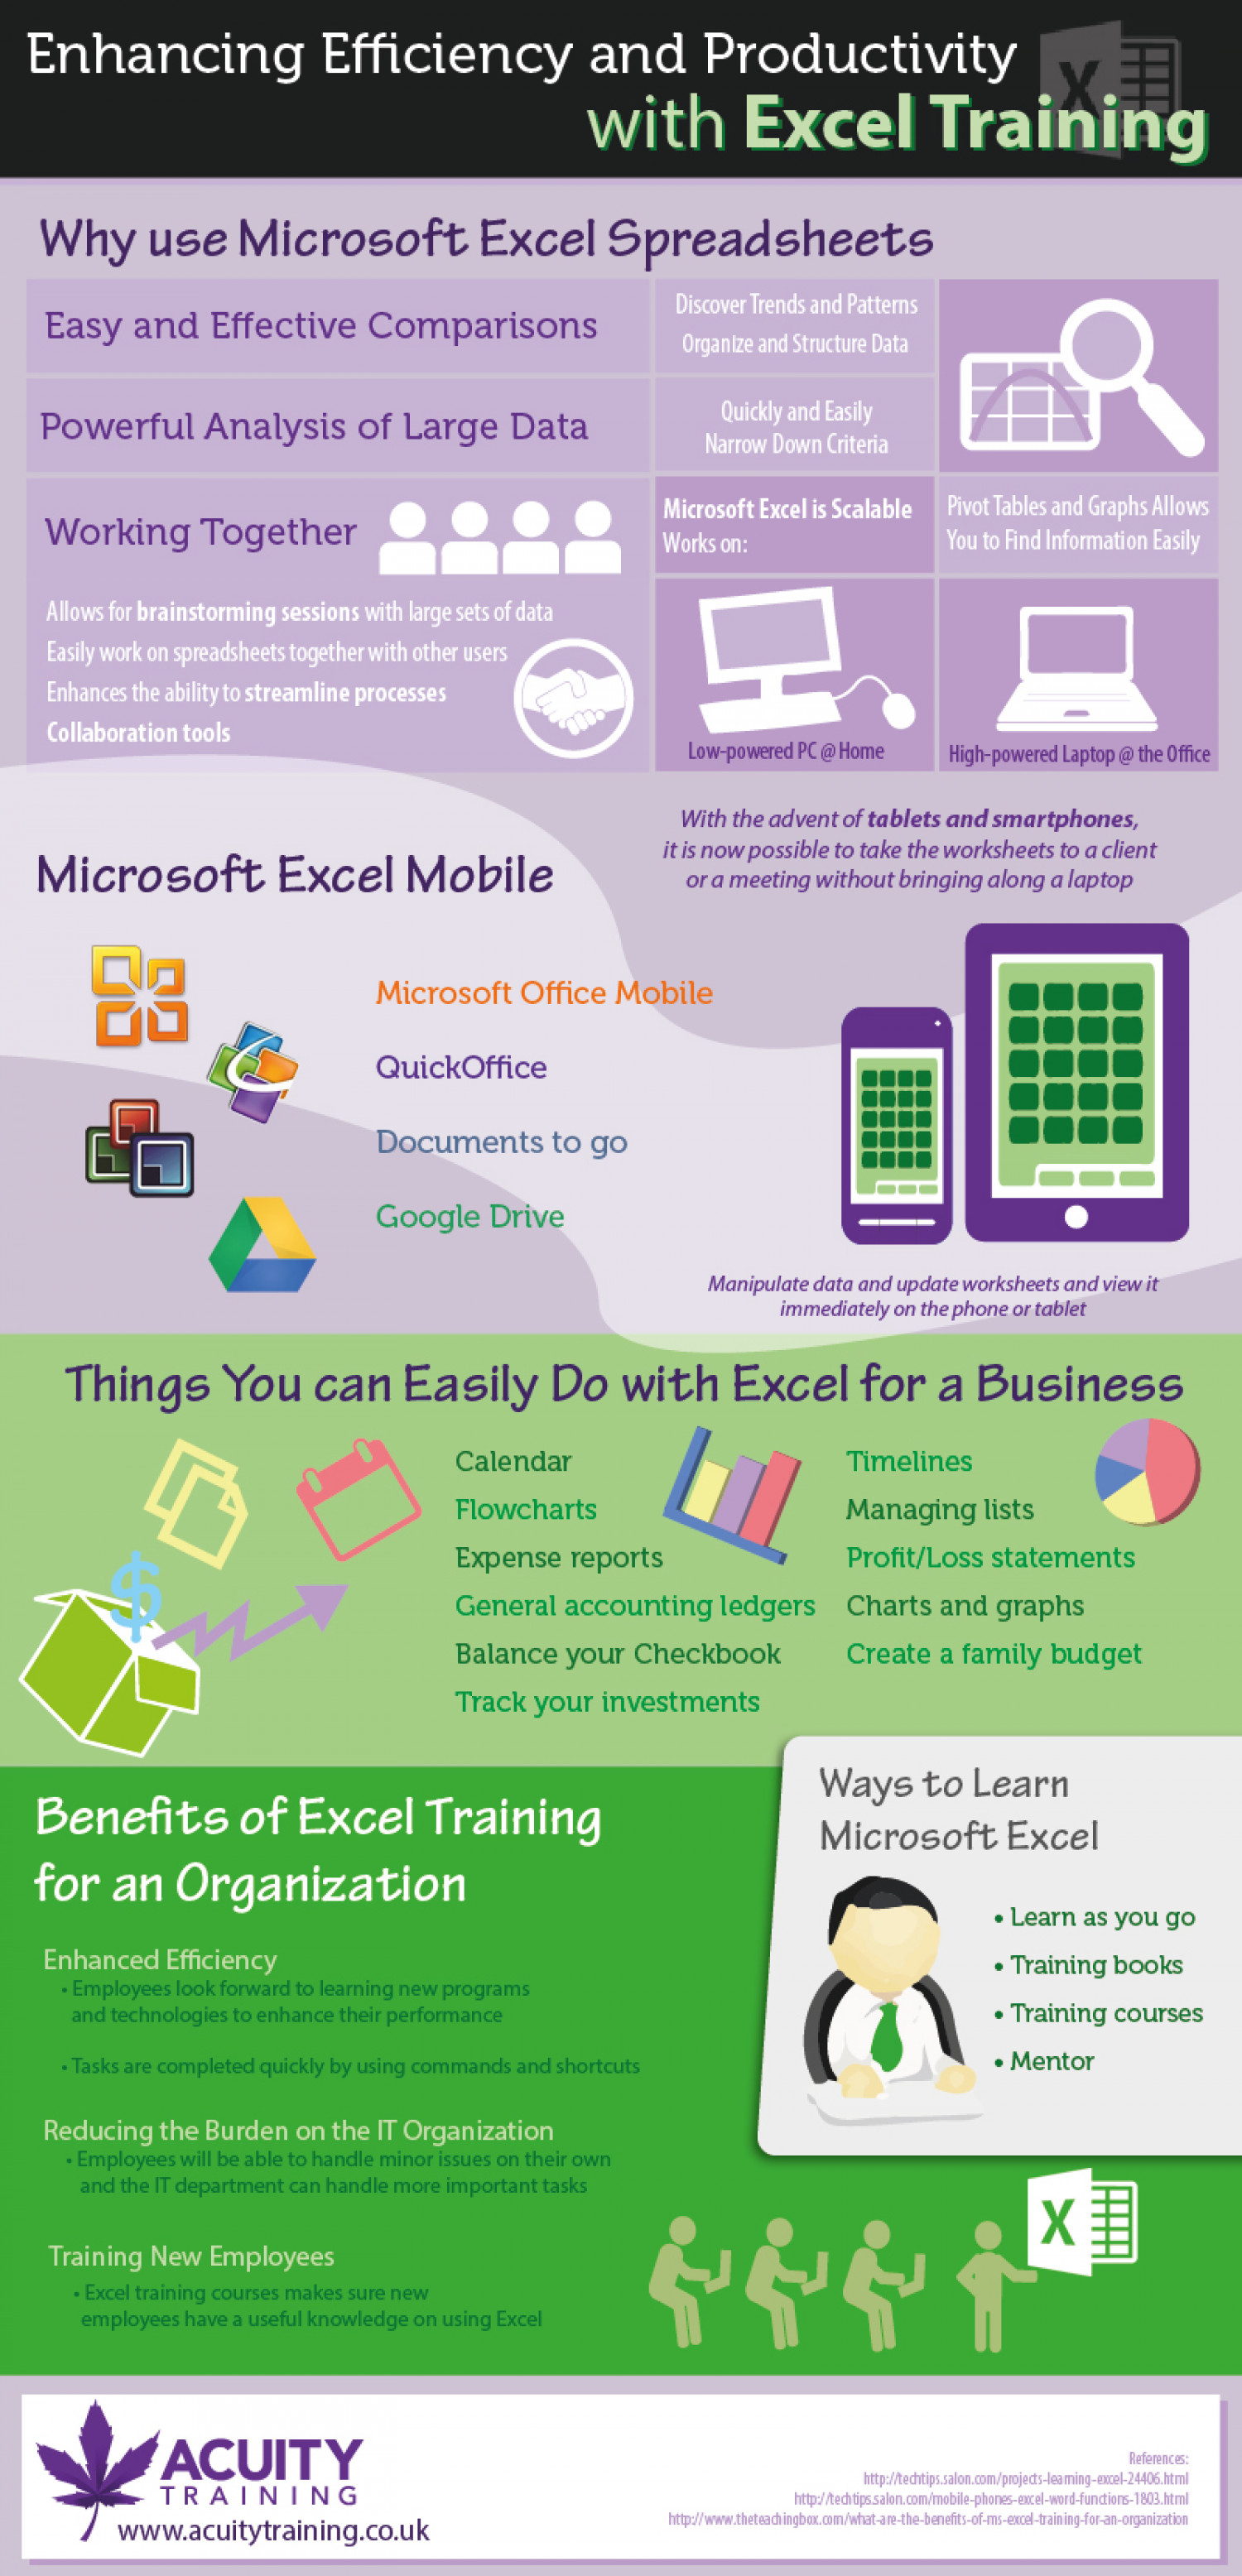 Enhancing Efficiency And Productivity With Excel Training